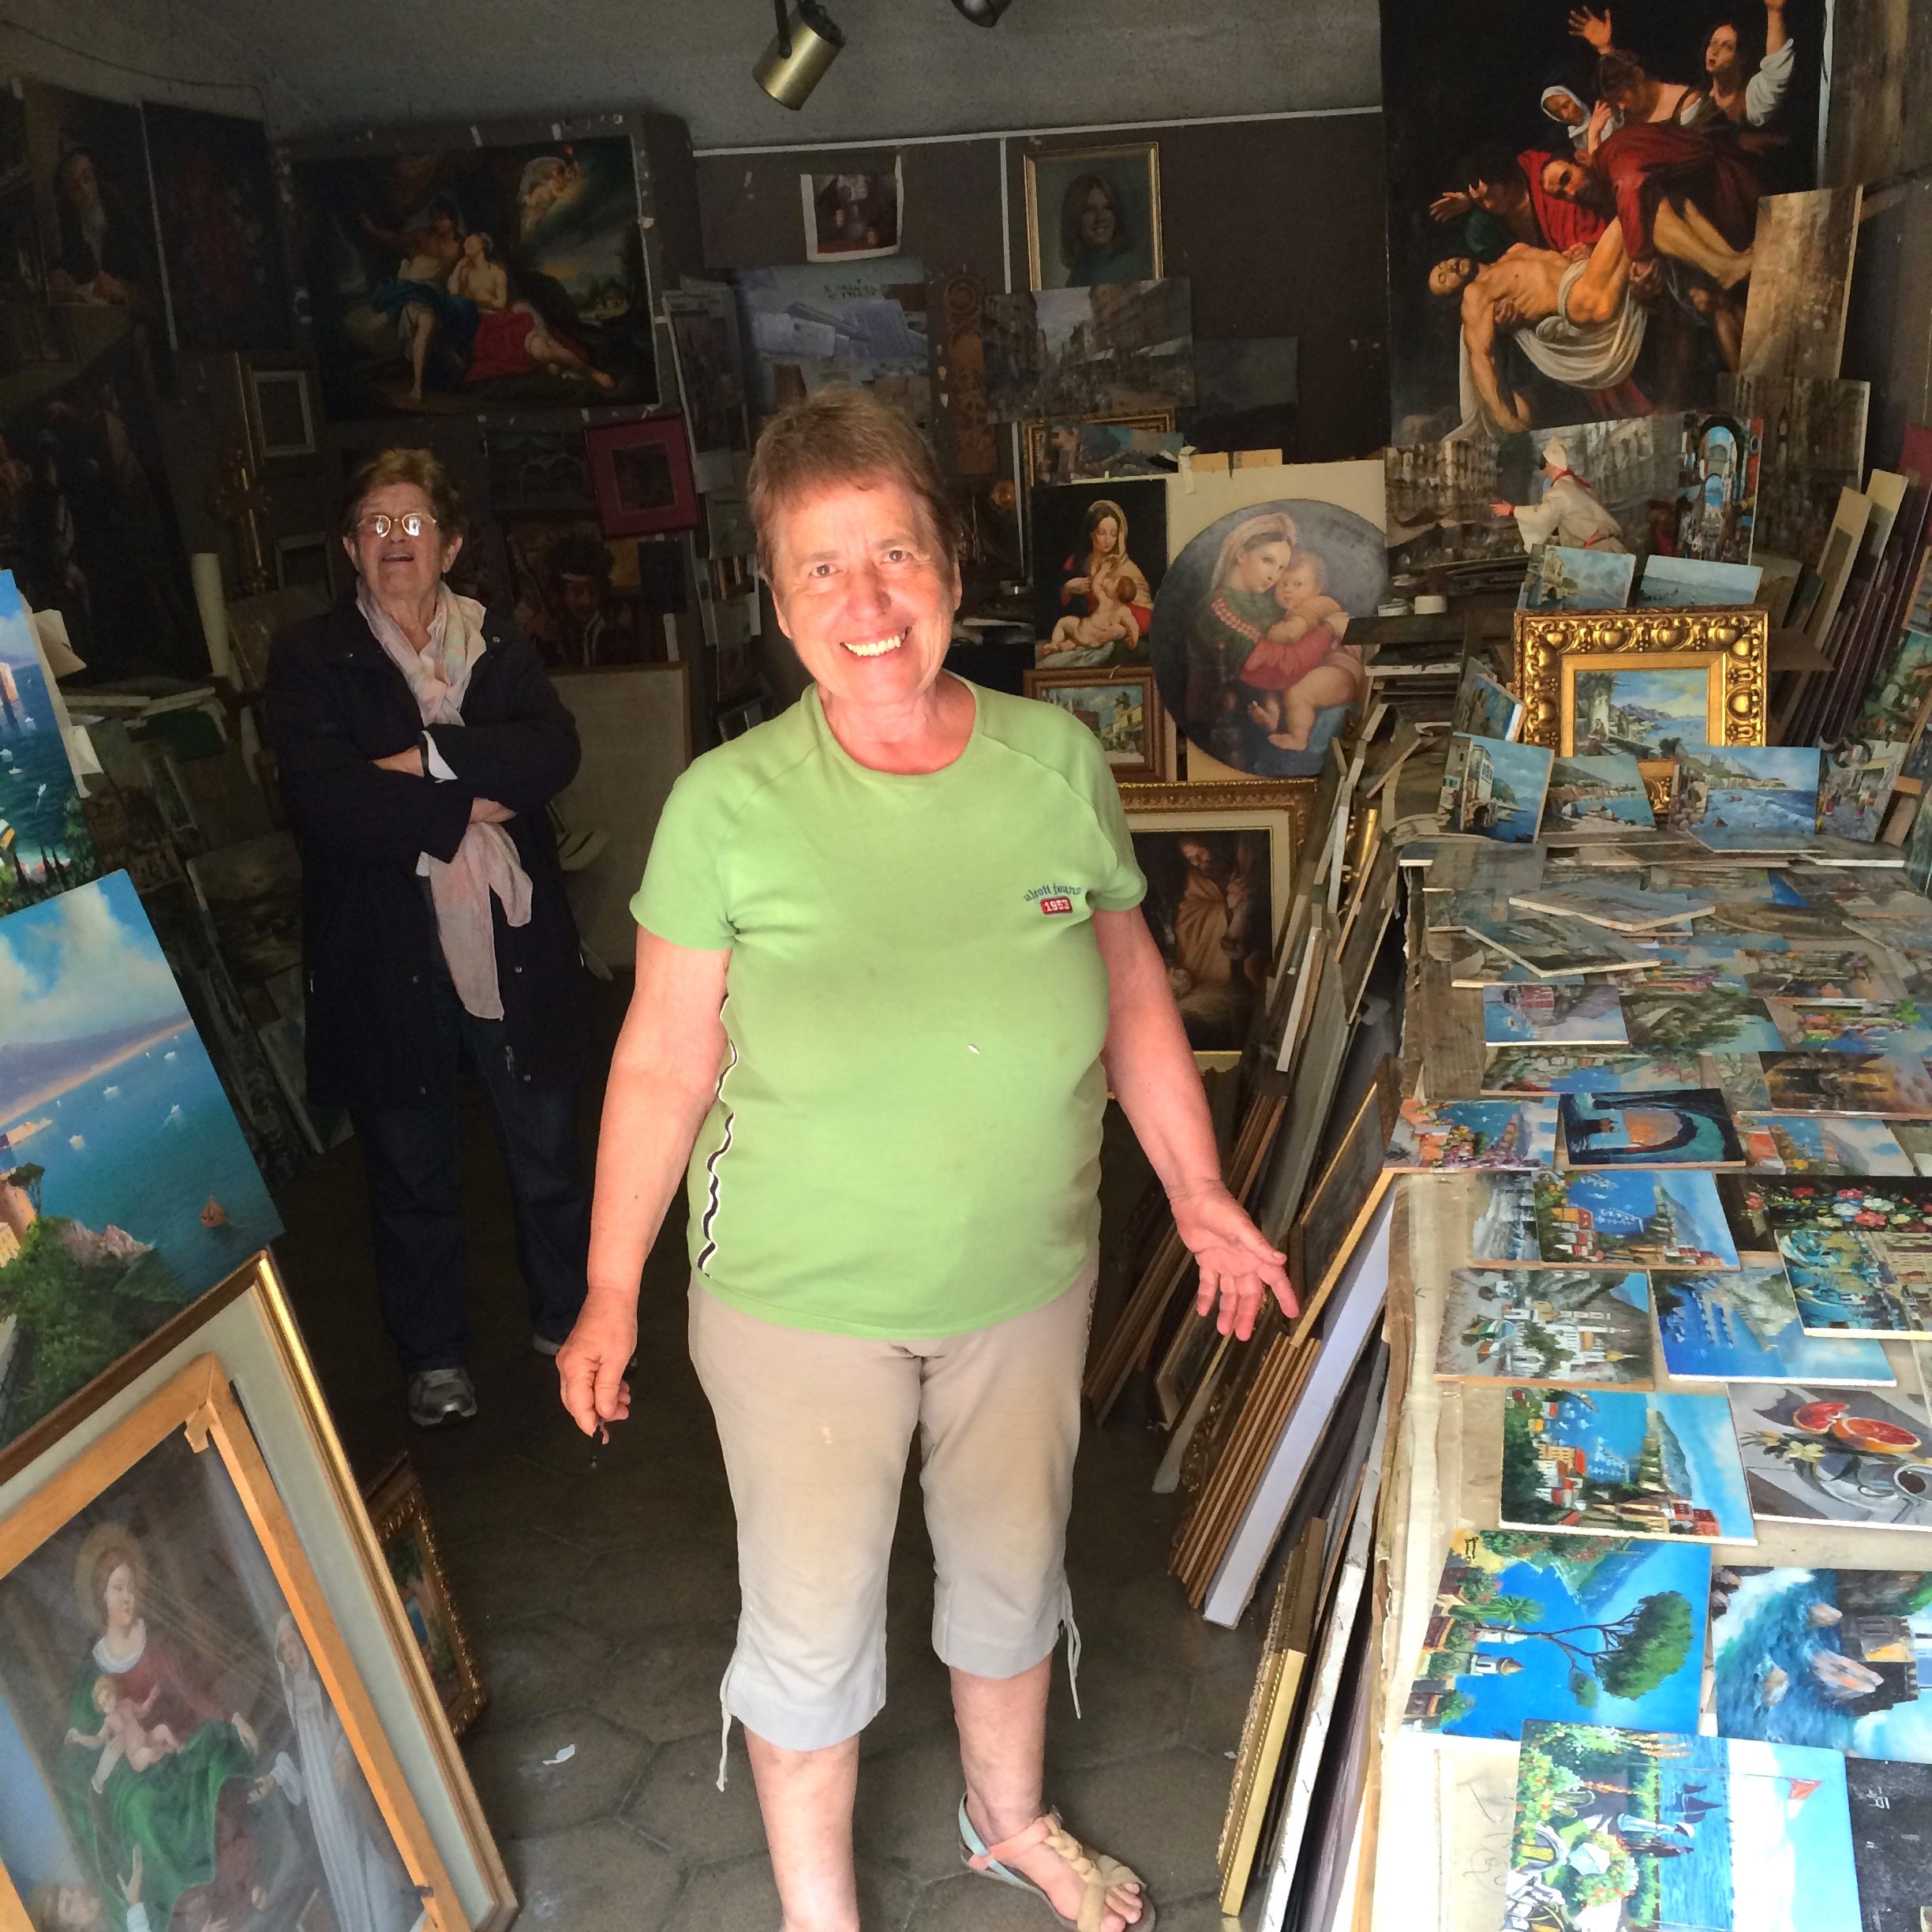 The beaming artist herself, in her studio. That may or may not be her mother in the background.